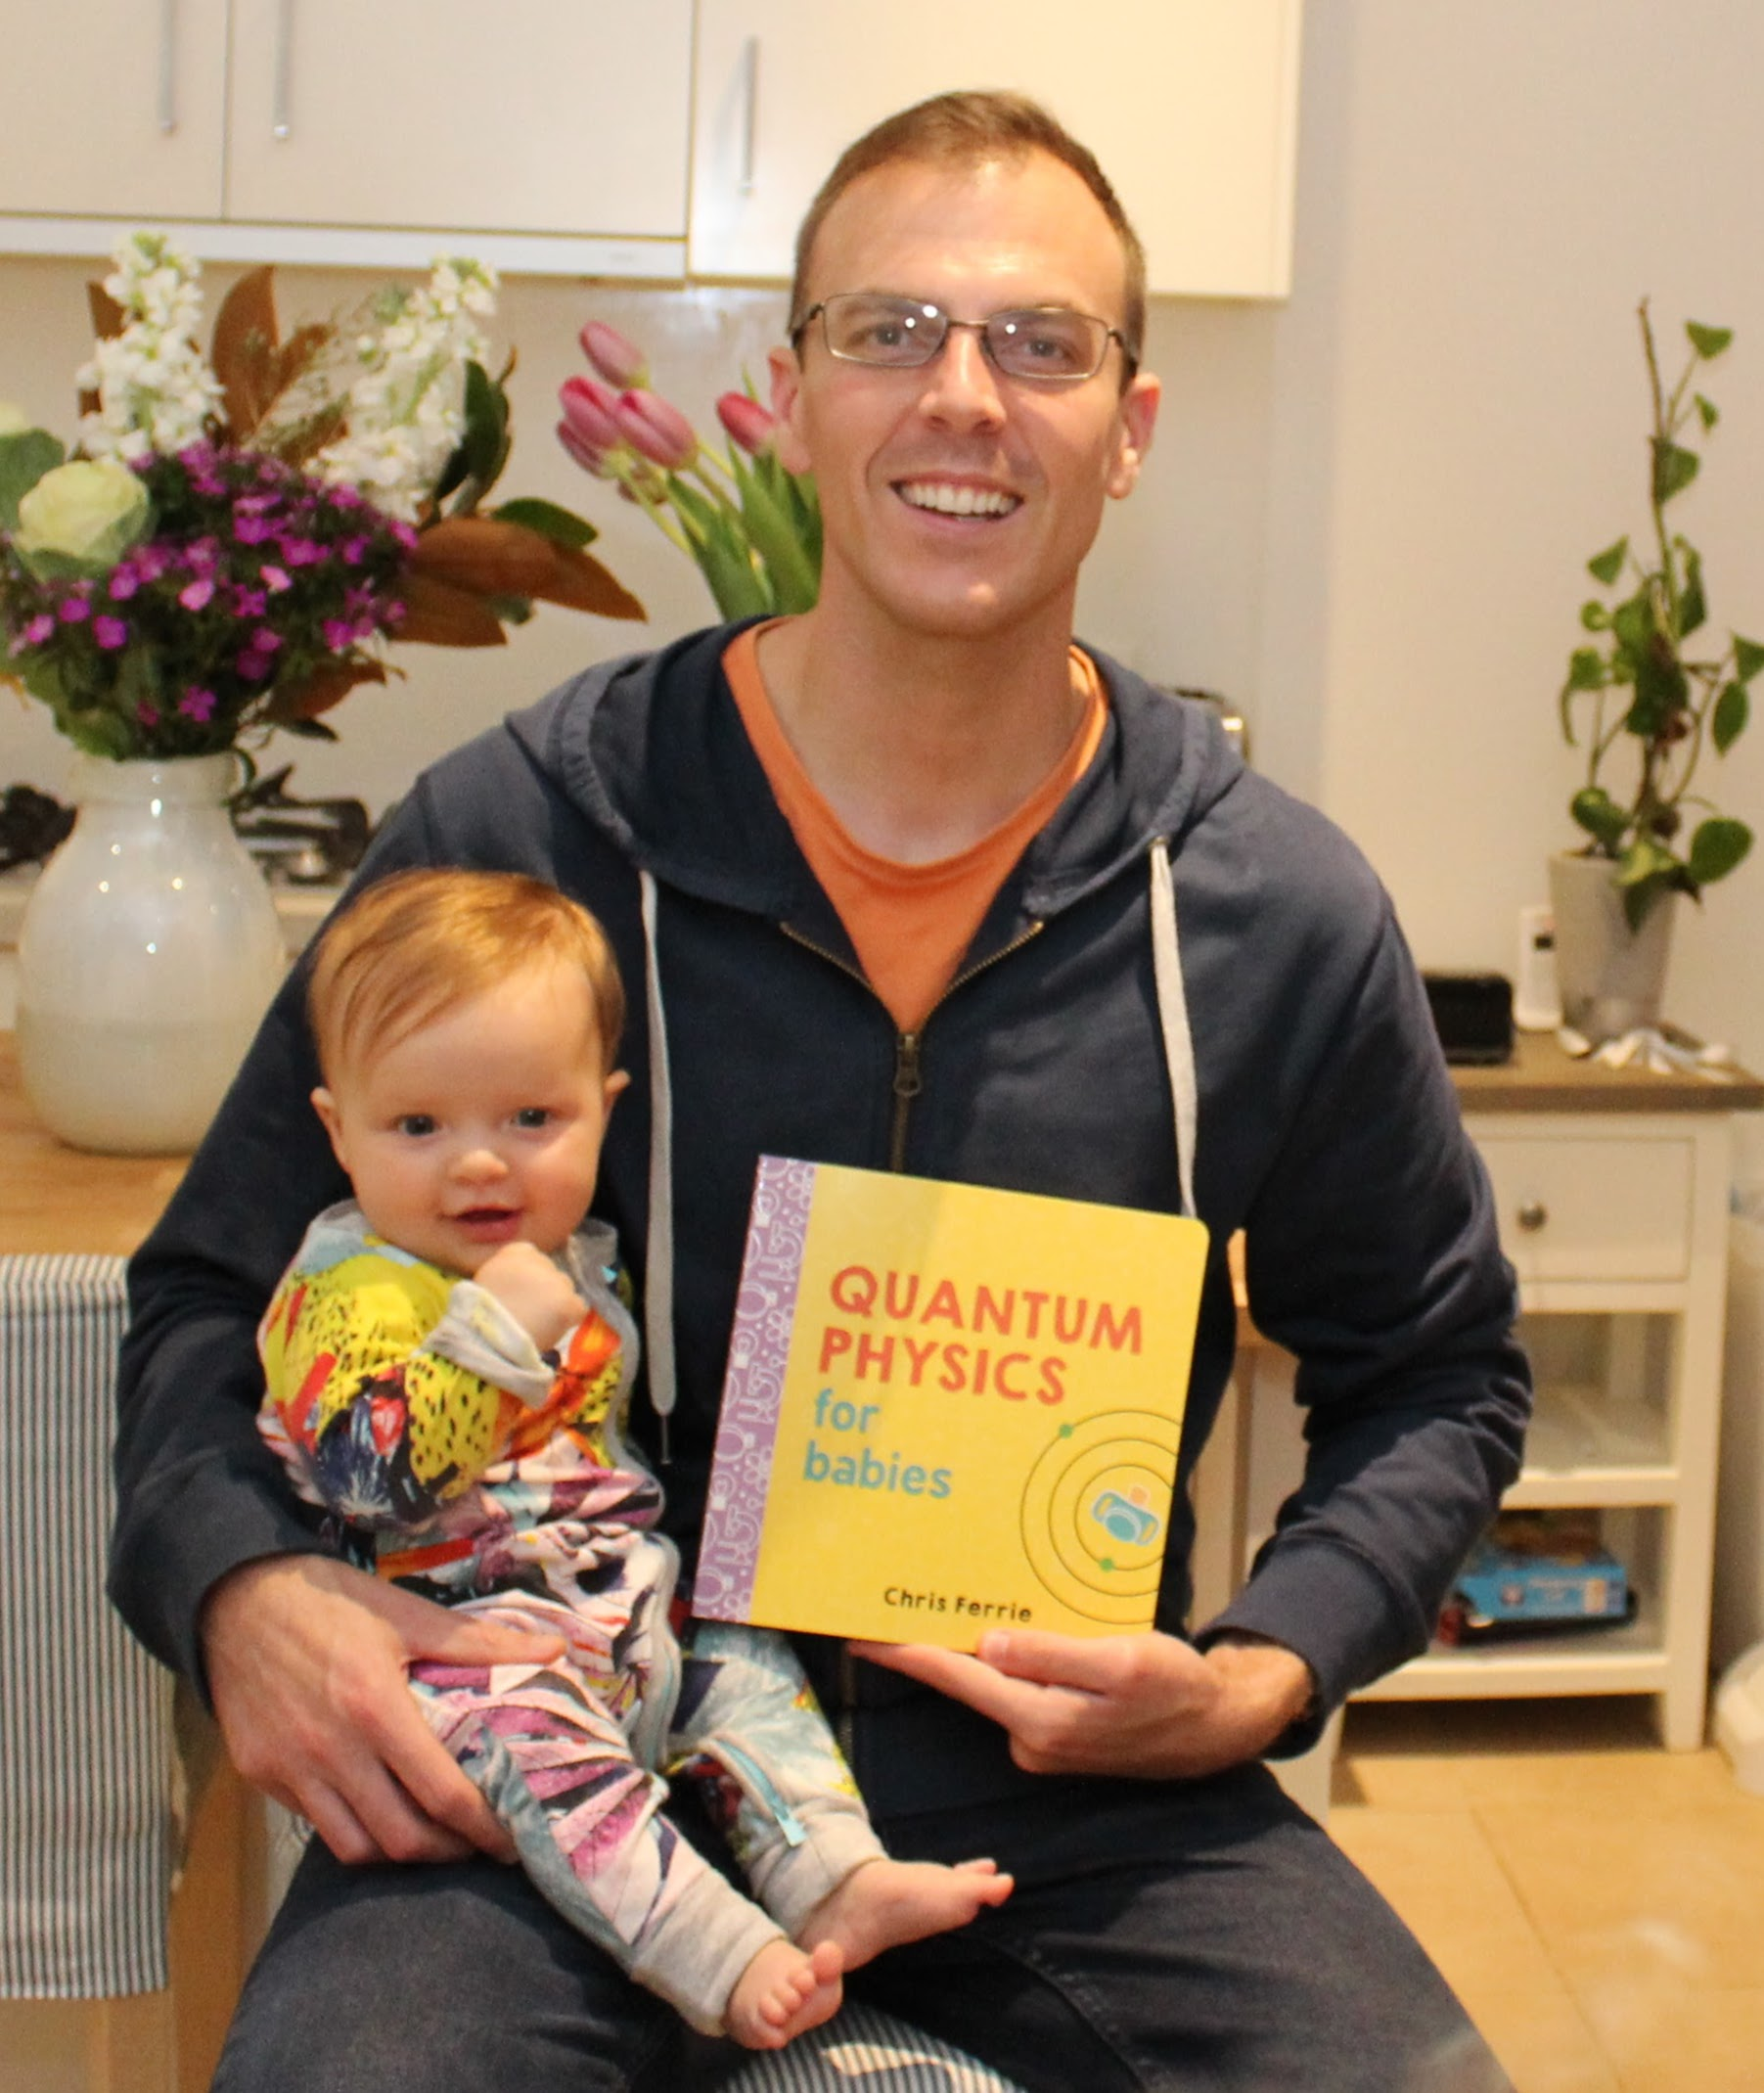 Chris with his baby and the 'Quantum Physics for Babies' book